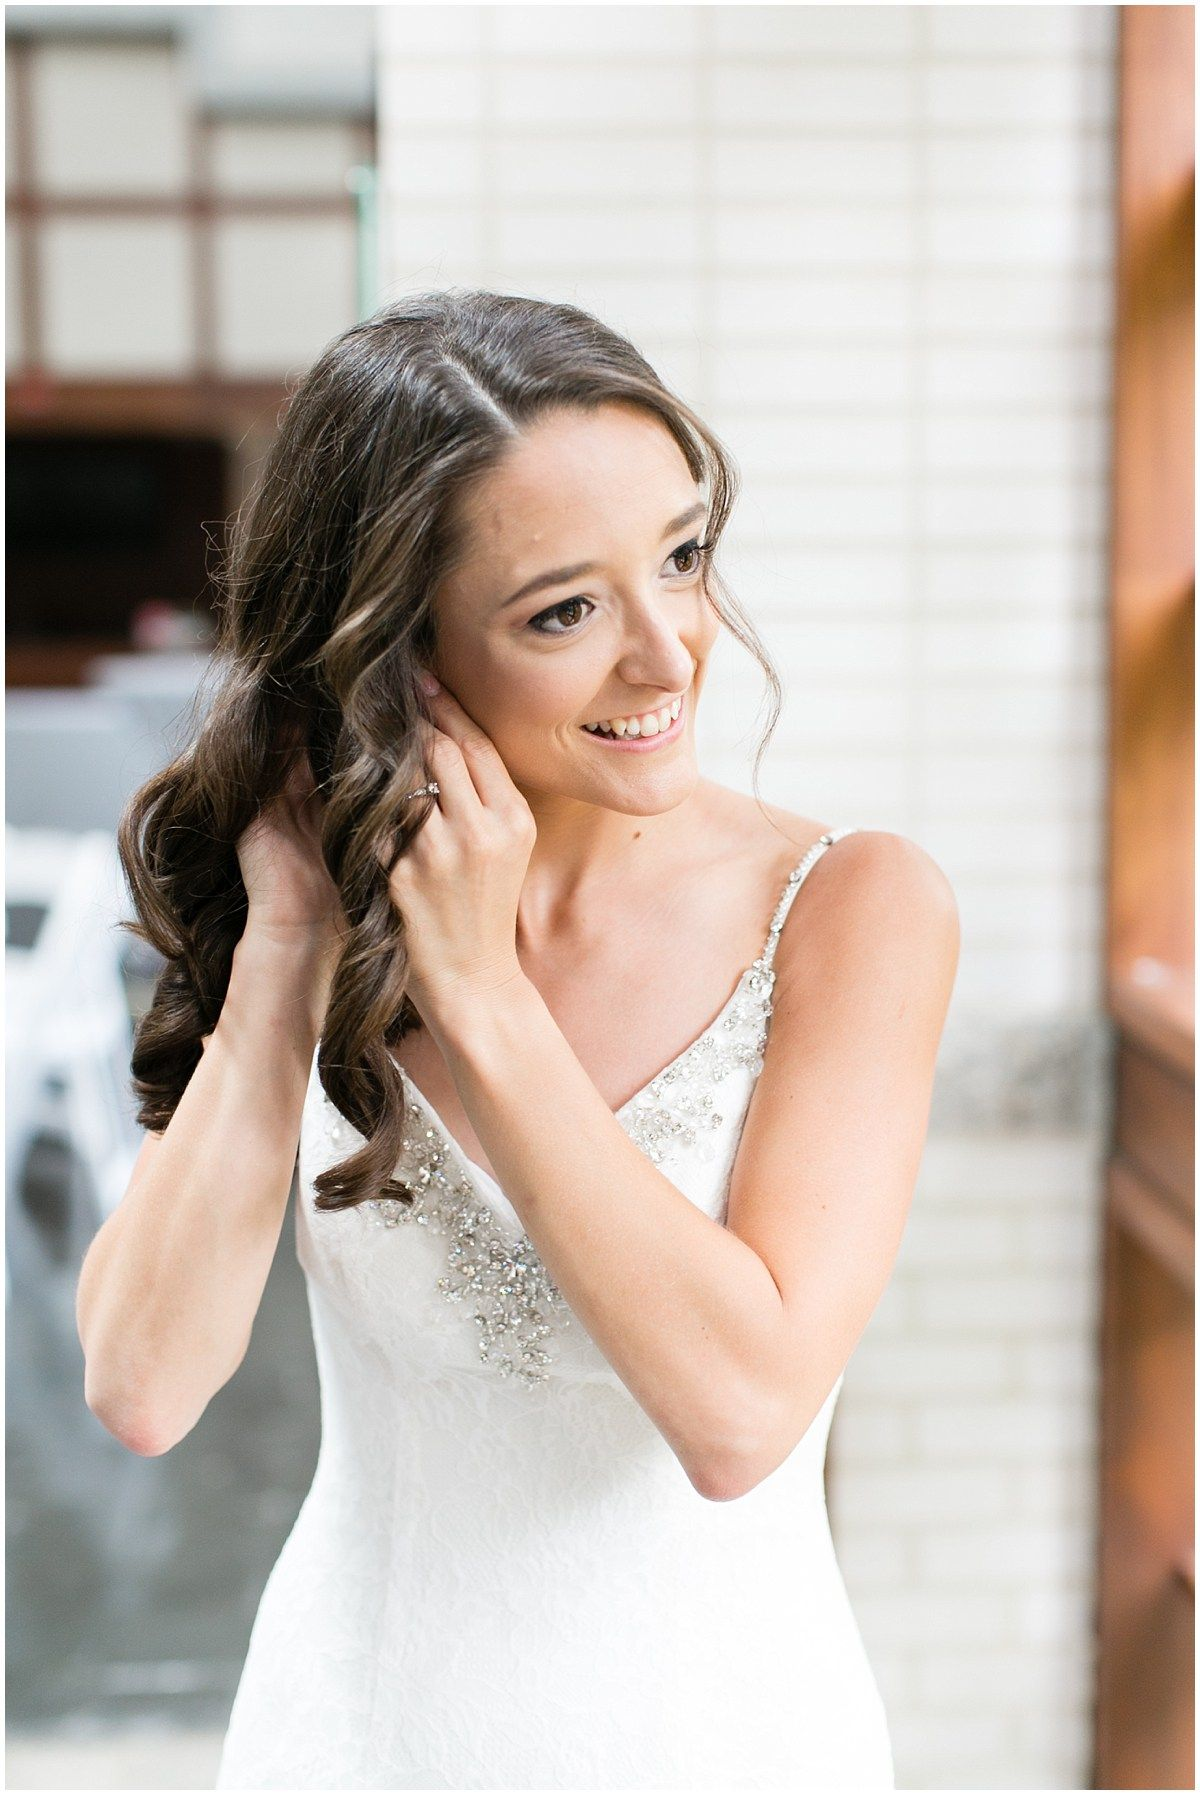 pin by jessica ryan photography on brides and grooms - jrp